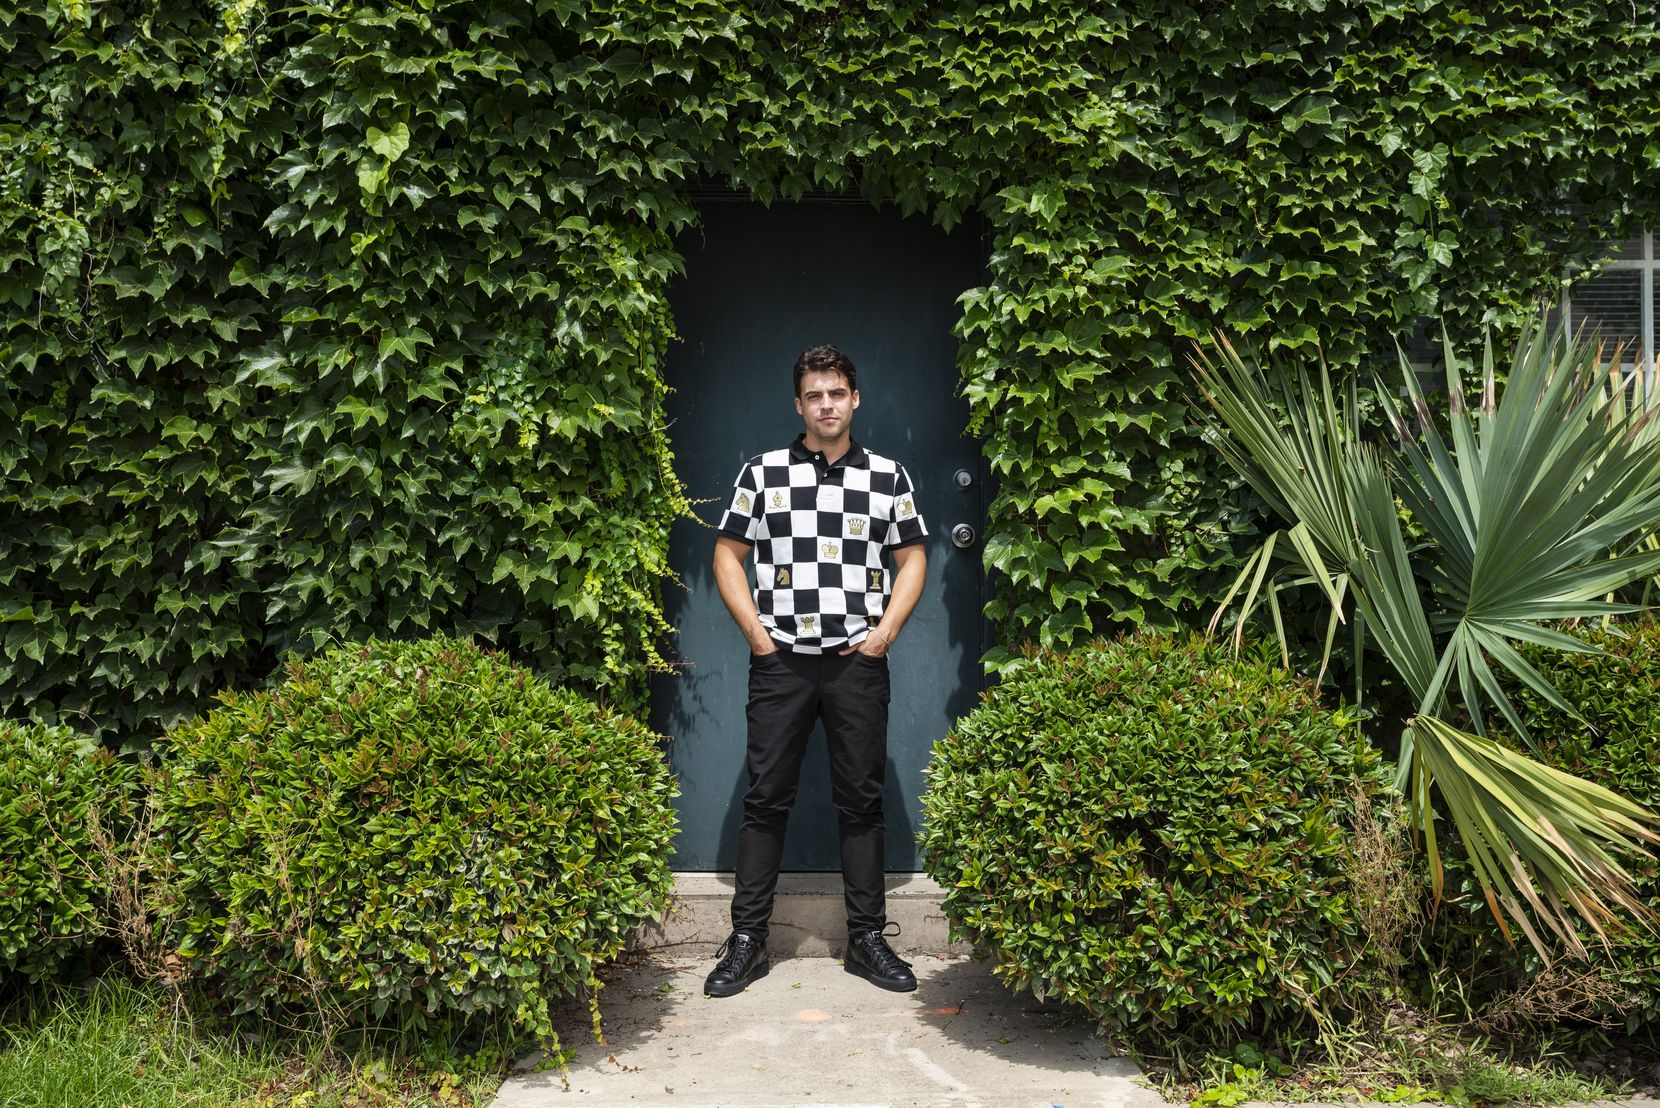 Kevin Rubén Jacobs outside of his ivy-clad Olivier François Galerie in Dallas' Exposition Park in July 2021.